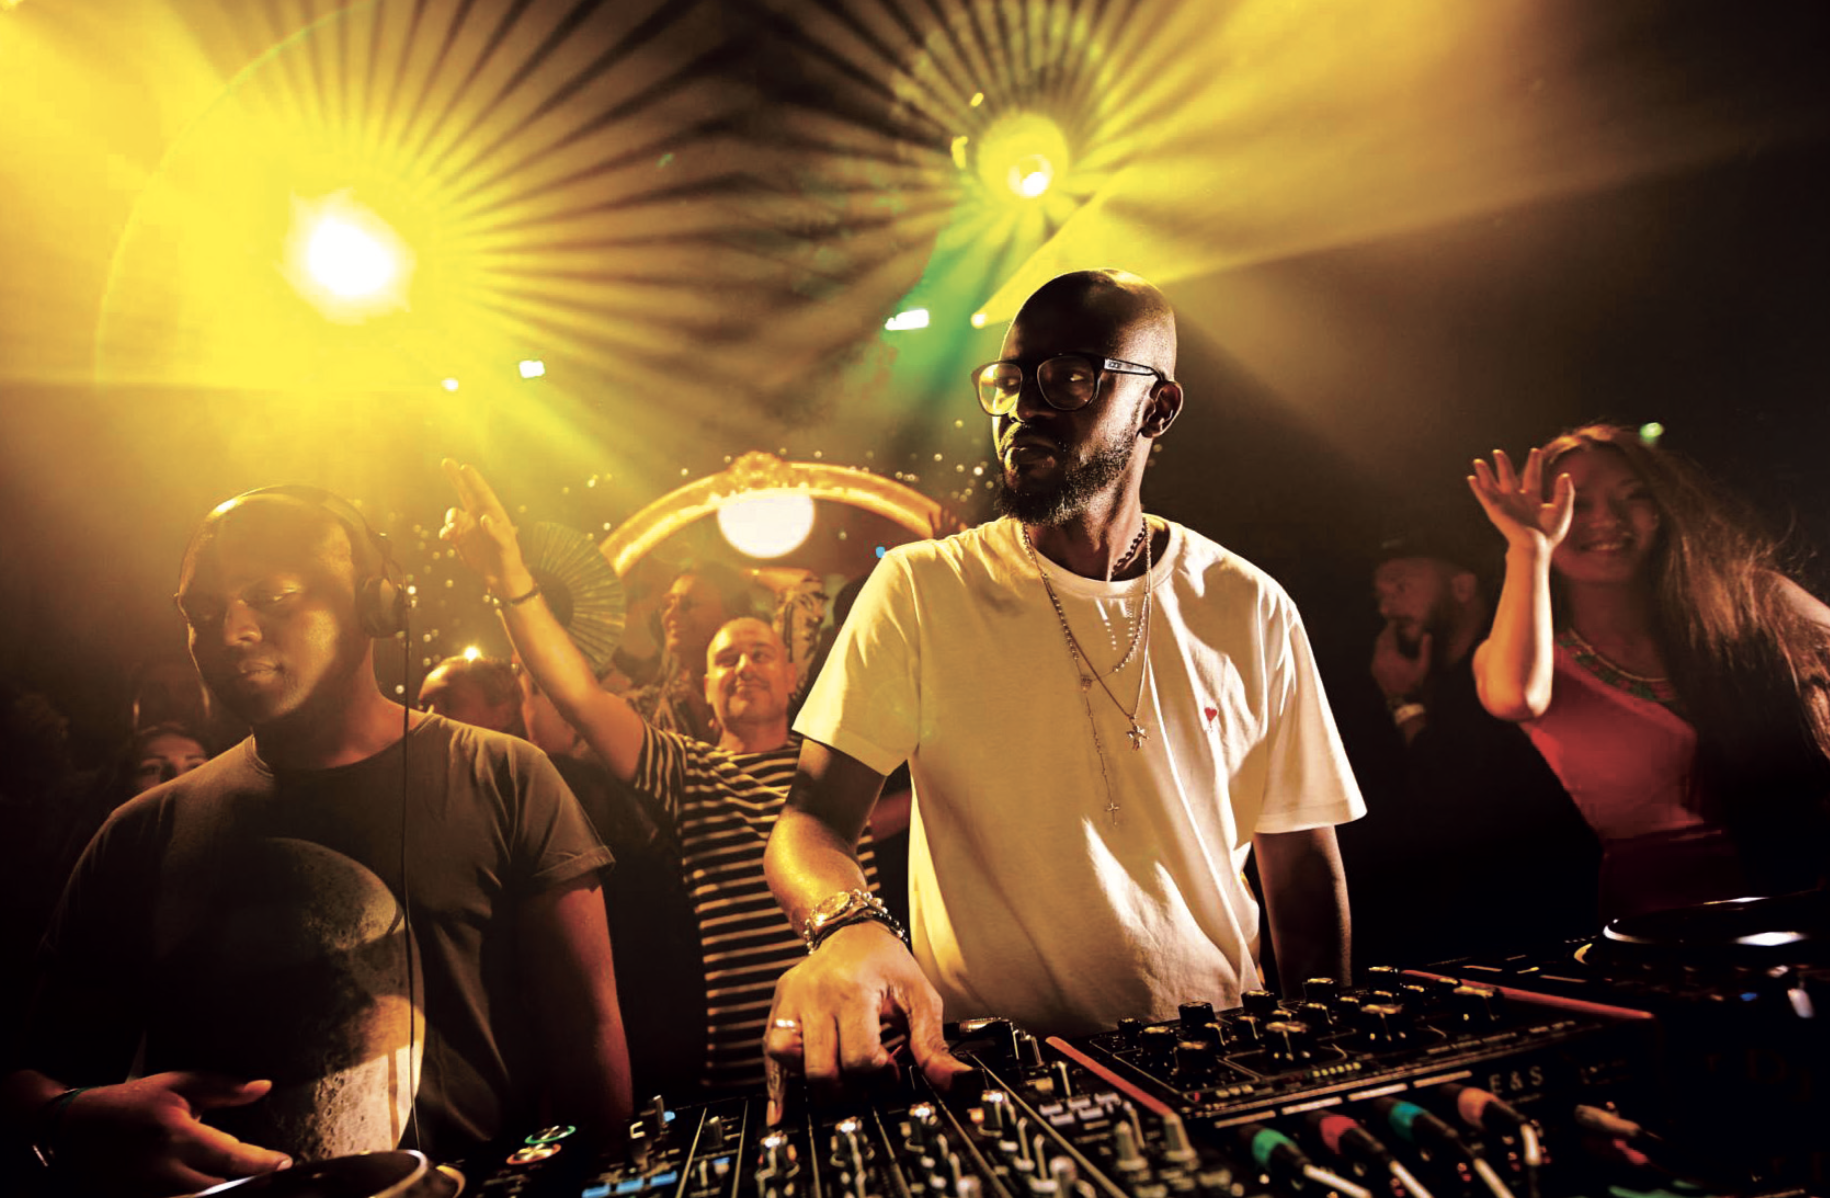 How Black Coffee overcame adversity to become one of the biggest DJs on the planet